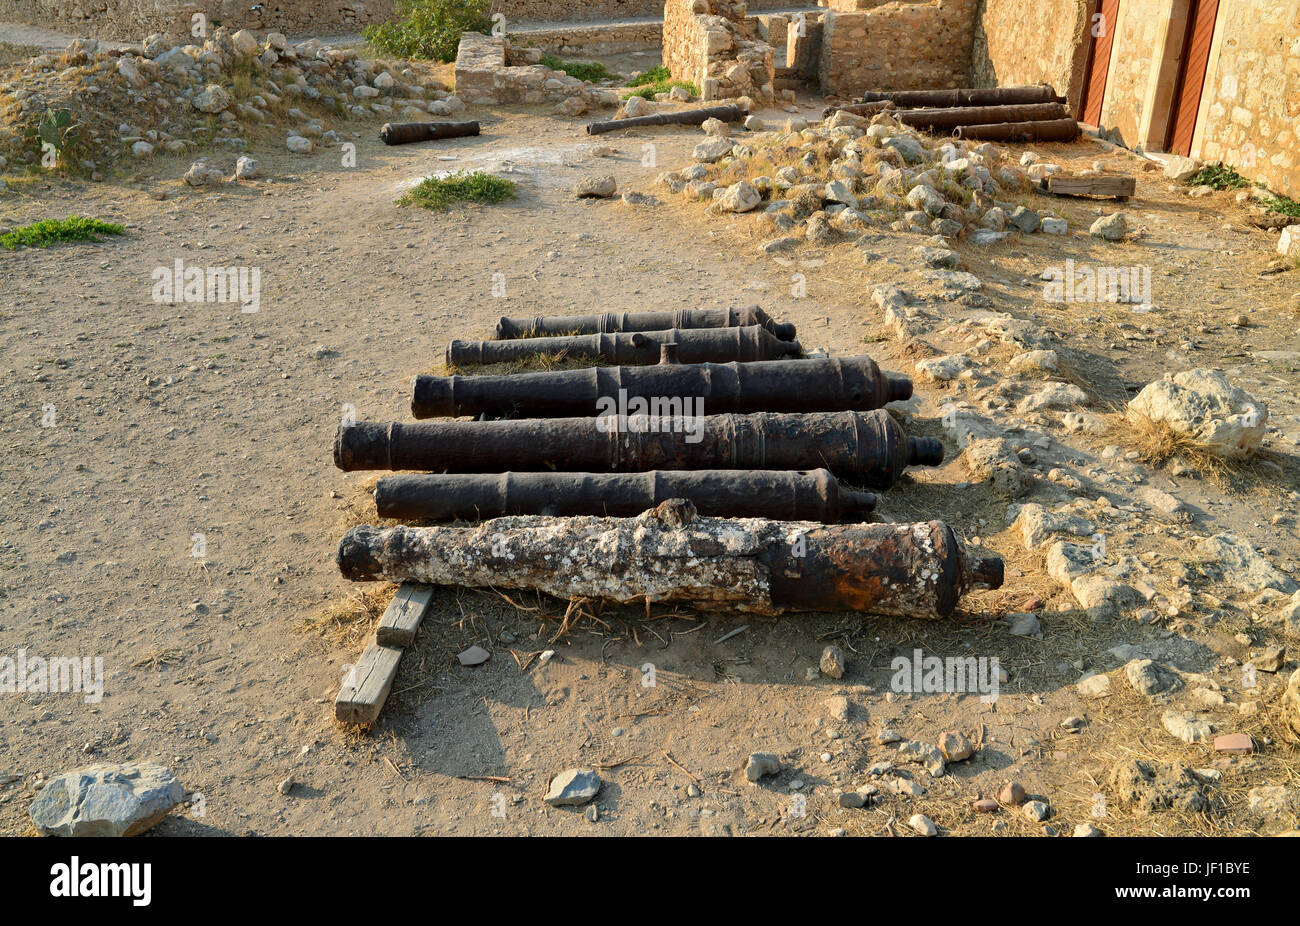 Rethymno Fortezza fortress cannons Stock Photo